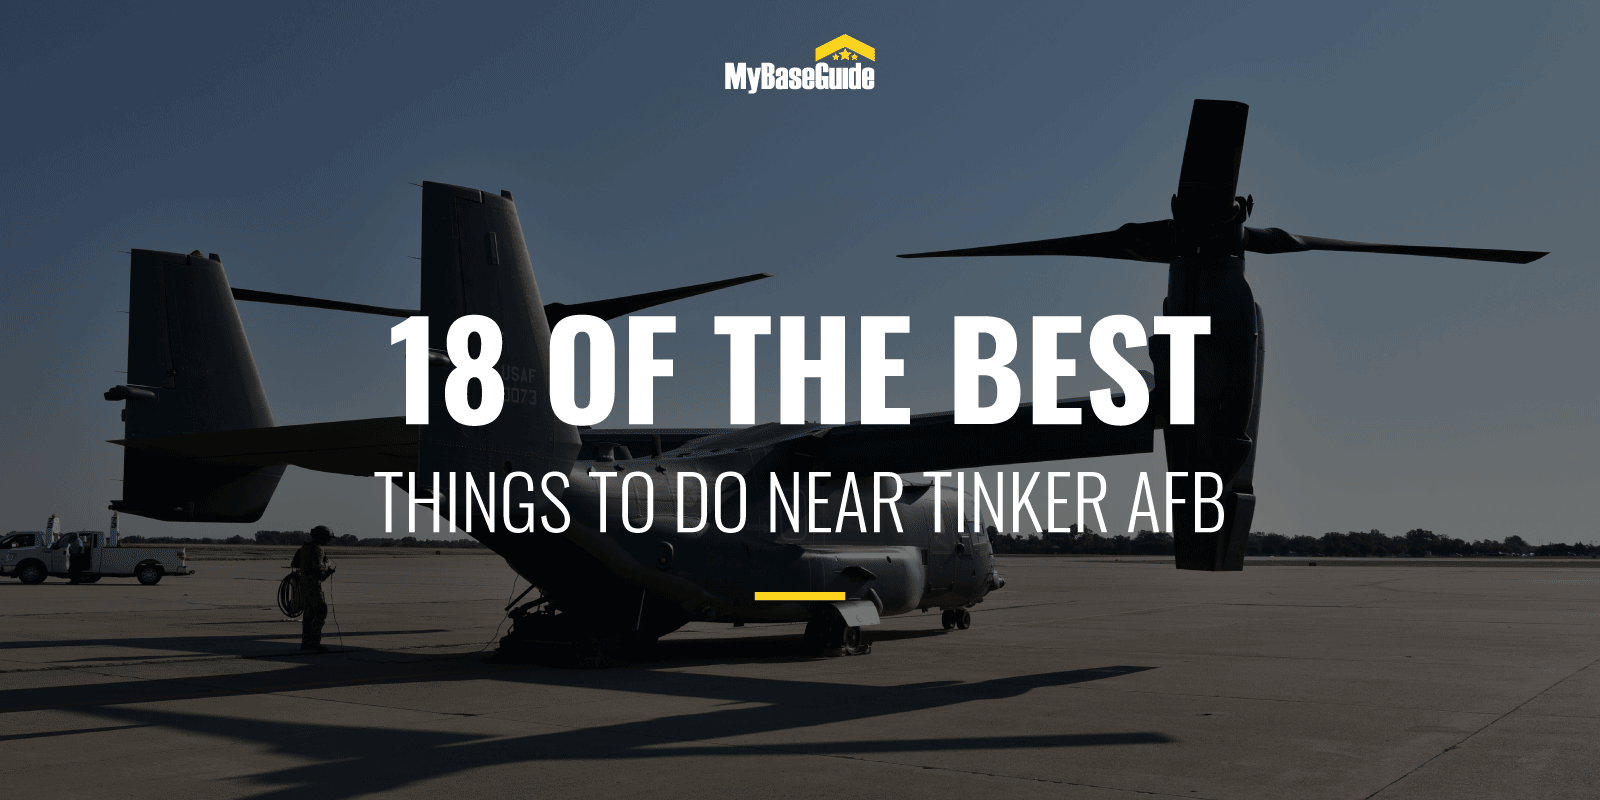 18 Of the Best Things to Do Around Tinker AFB